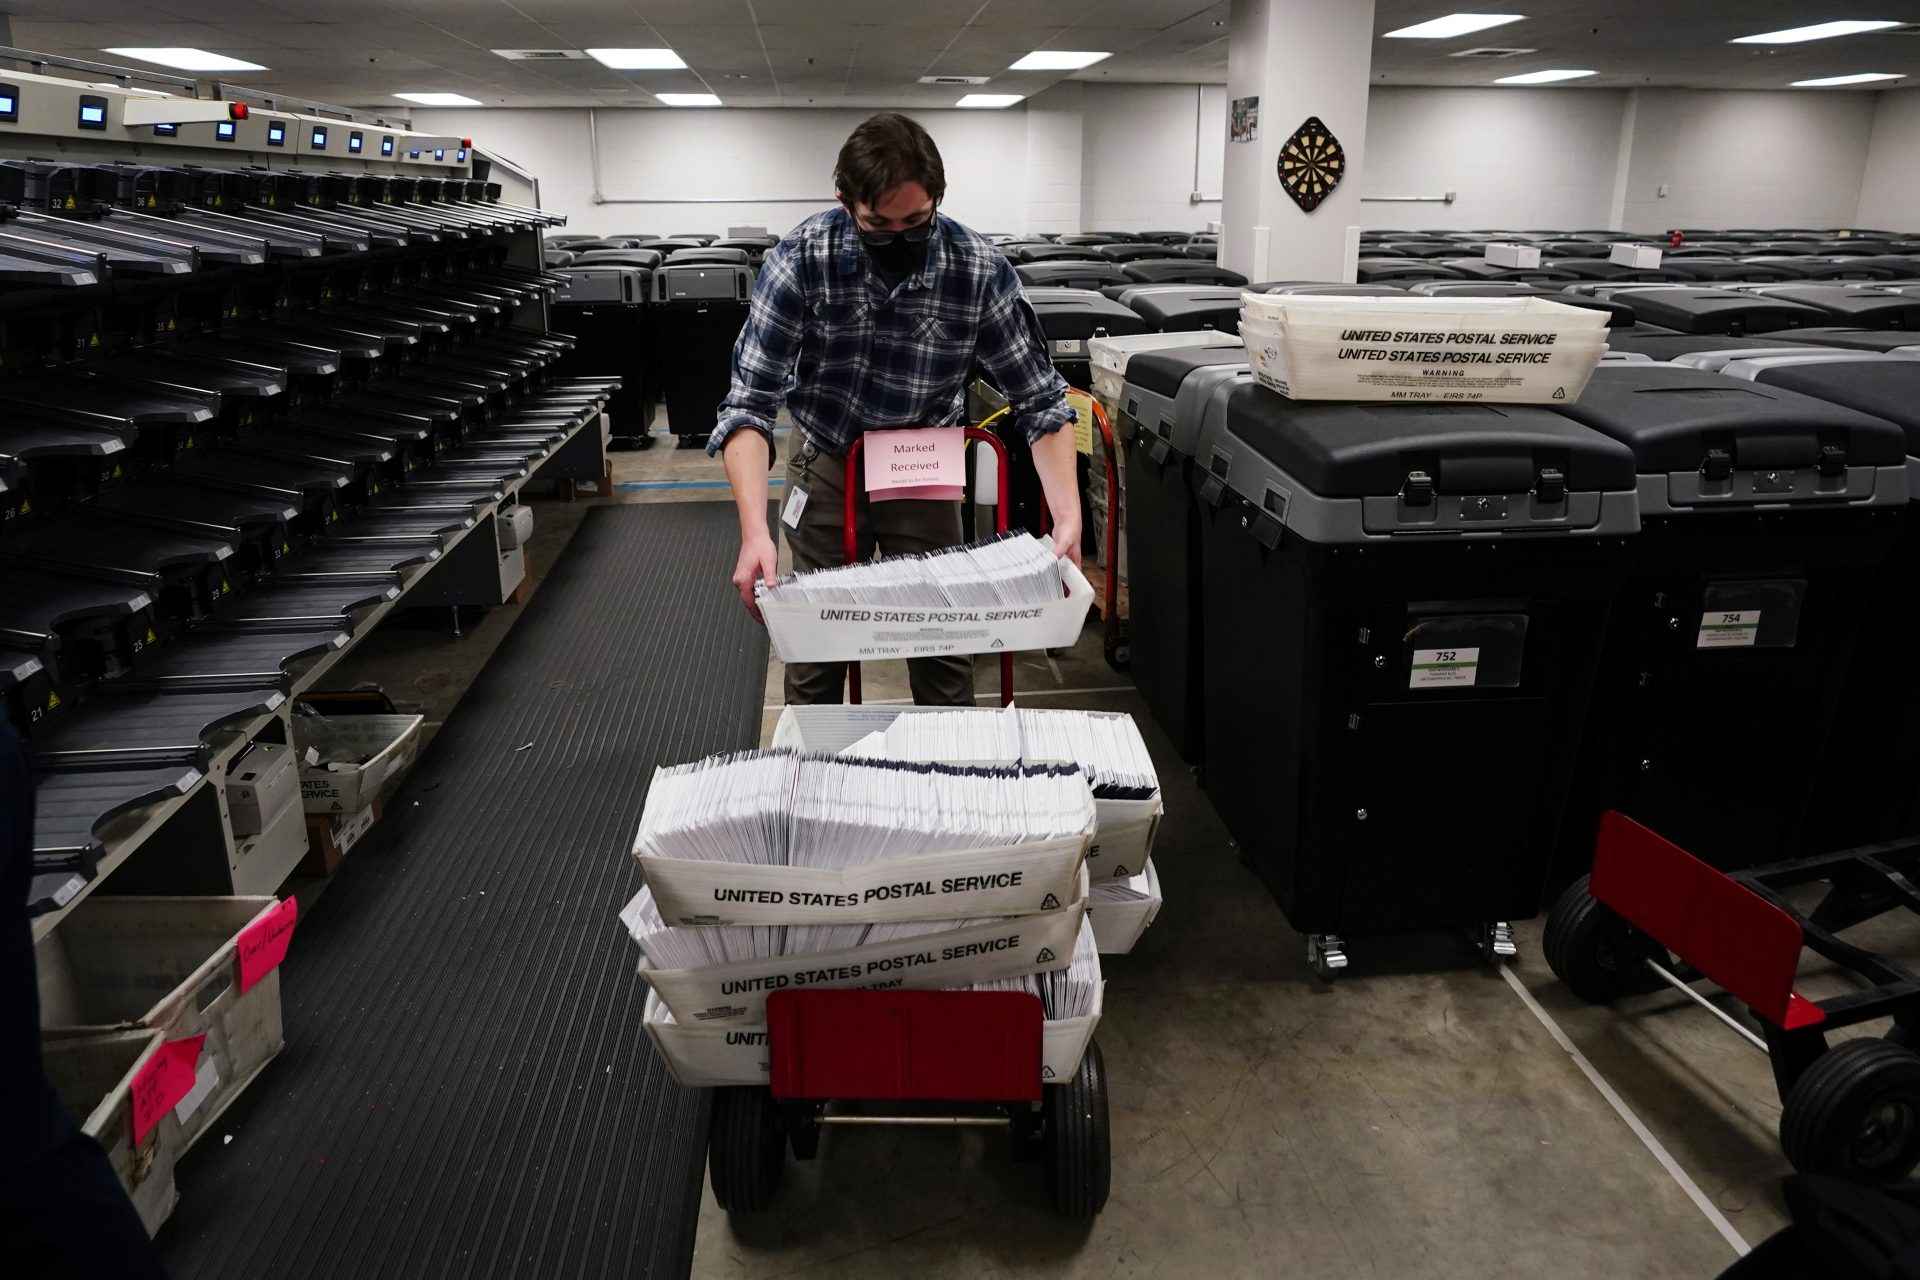 Michael Imms, with Chester County Voter Services, gathers mail-in ballots after being sorted for the 2020 General Election in the United States, Friday, Oct. 23, 2020, in West Chester, Pa.